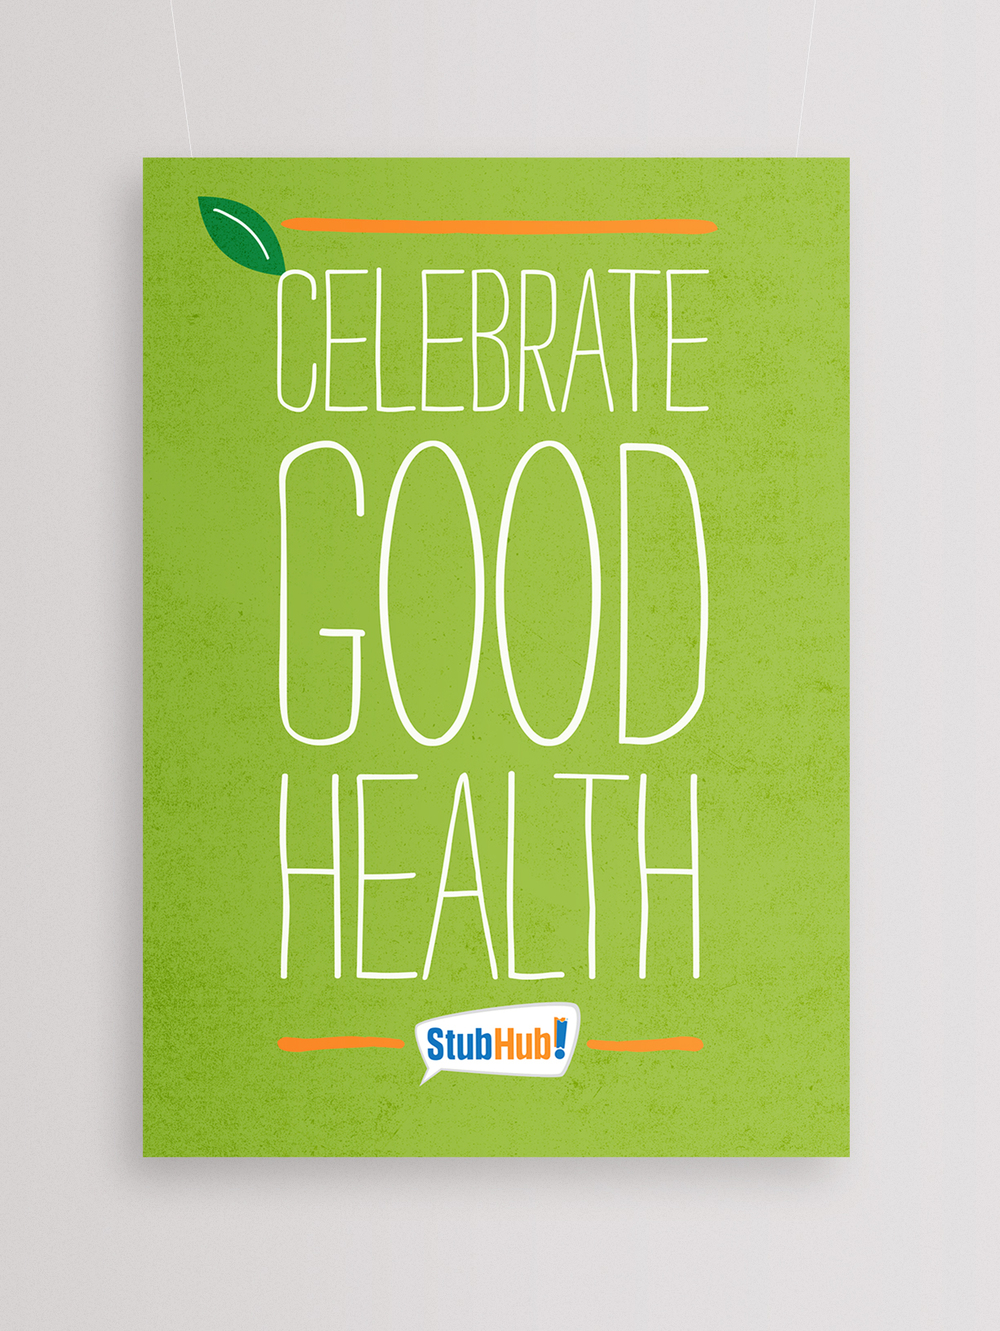 stubhub_Good-Health_Poster.jpg